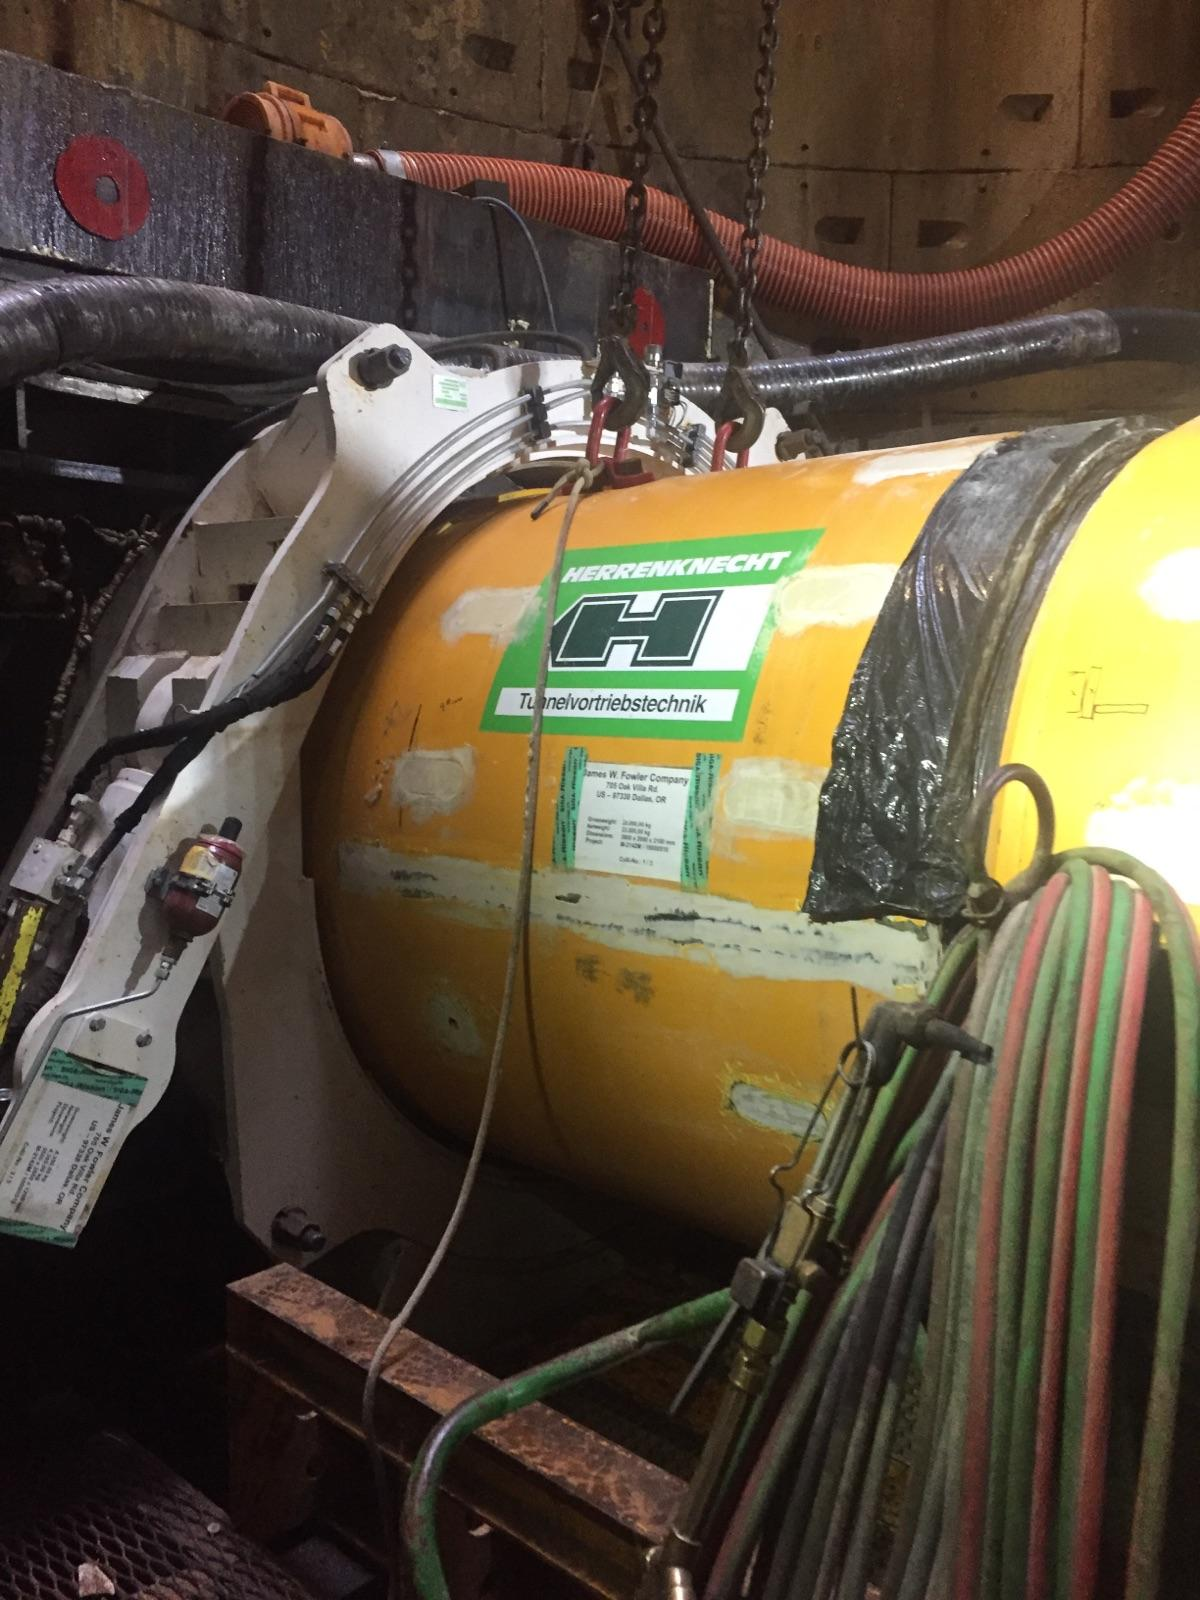 Micro-tunneling machine in place at the bottom of the shaft.